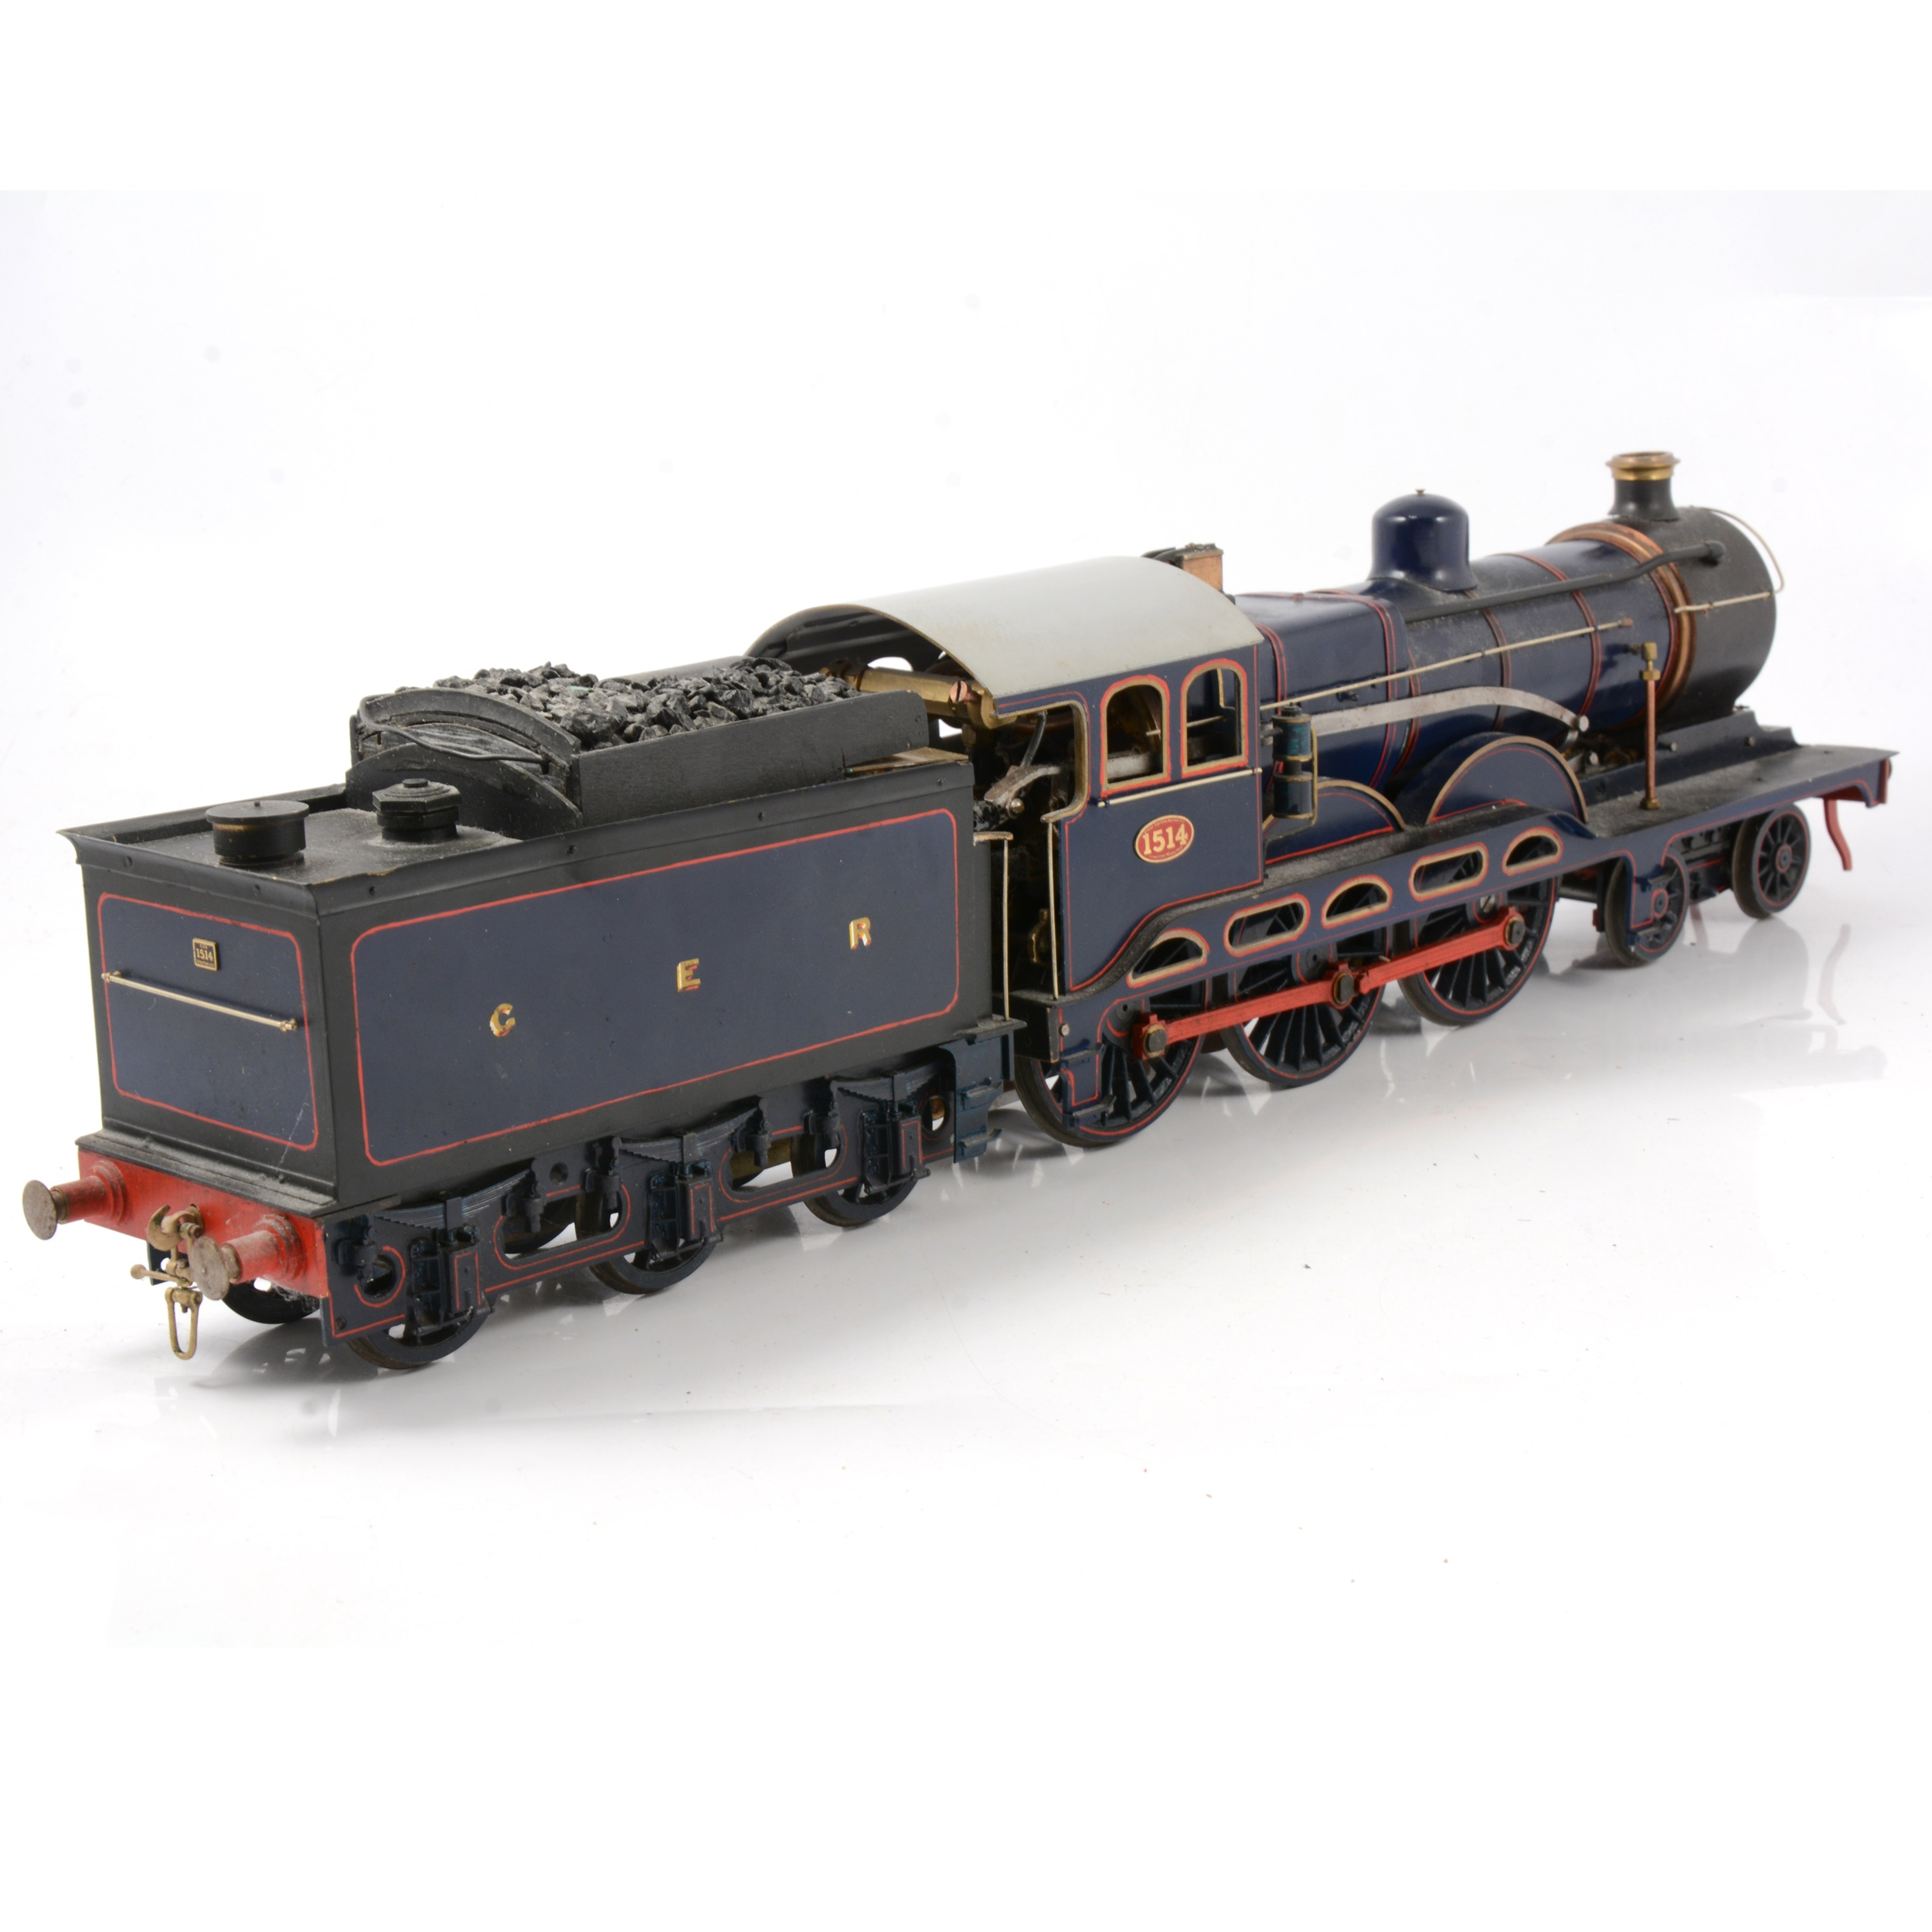 A well-built live steam gauge 1 / G scale, 45mm locomotive, GER, 4-6-0 no.1514 'Royal Train' - Image 3 of 4